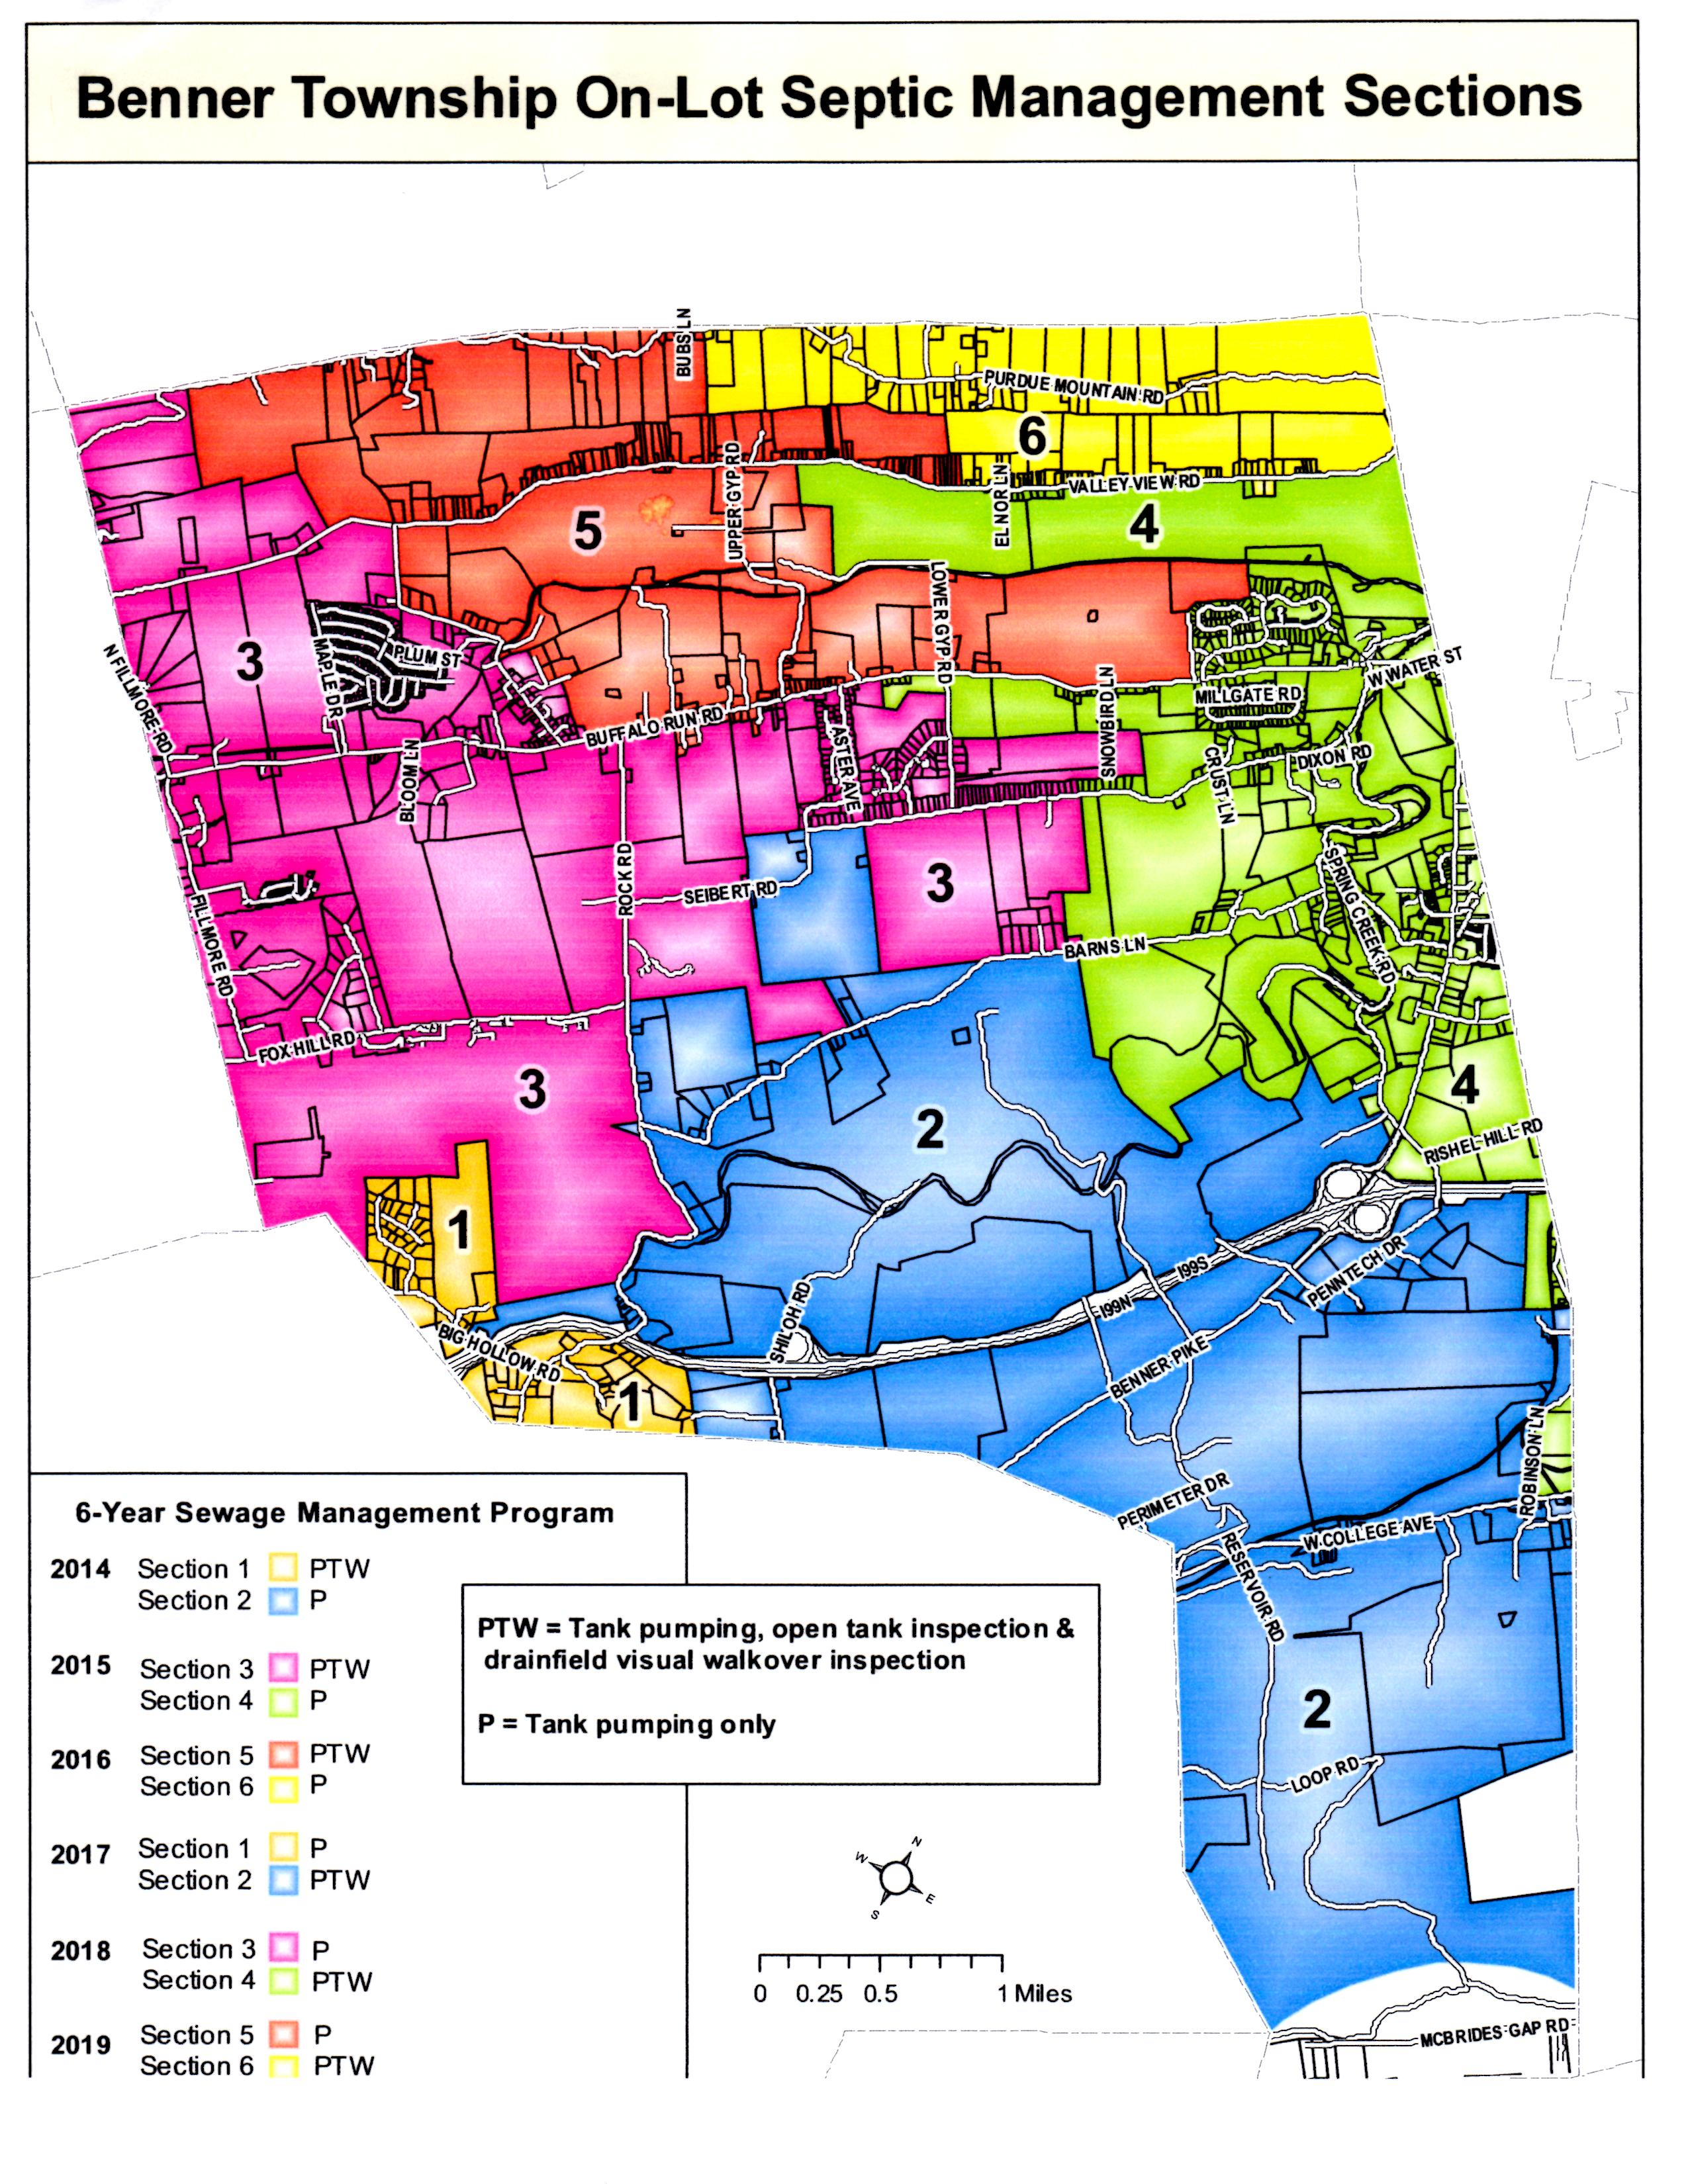 Benner Township | bennertownship.org on floodplain map of pa, street map of pa, address map of pa, topo map of pa, agriculture map of pa, public land map of pa, precinct map of pa, employment map of pa, construction map of pa, land use map of pa,